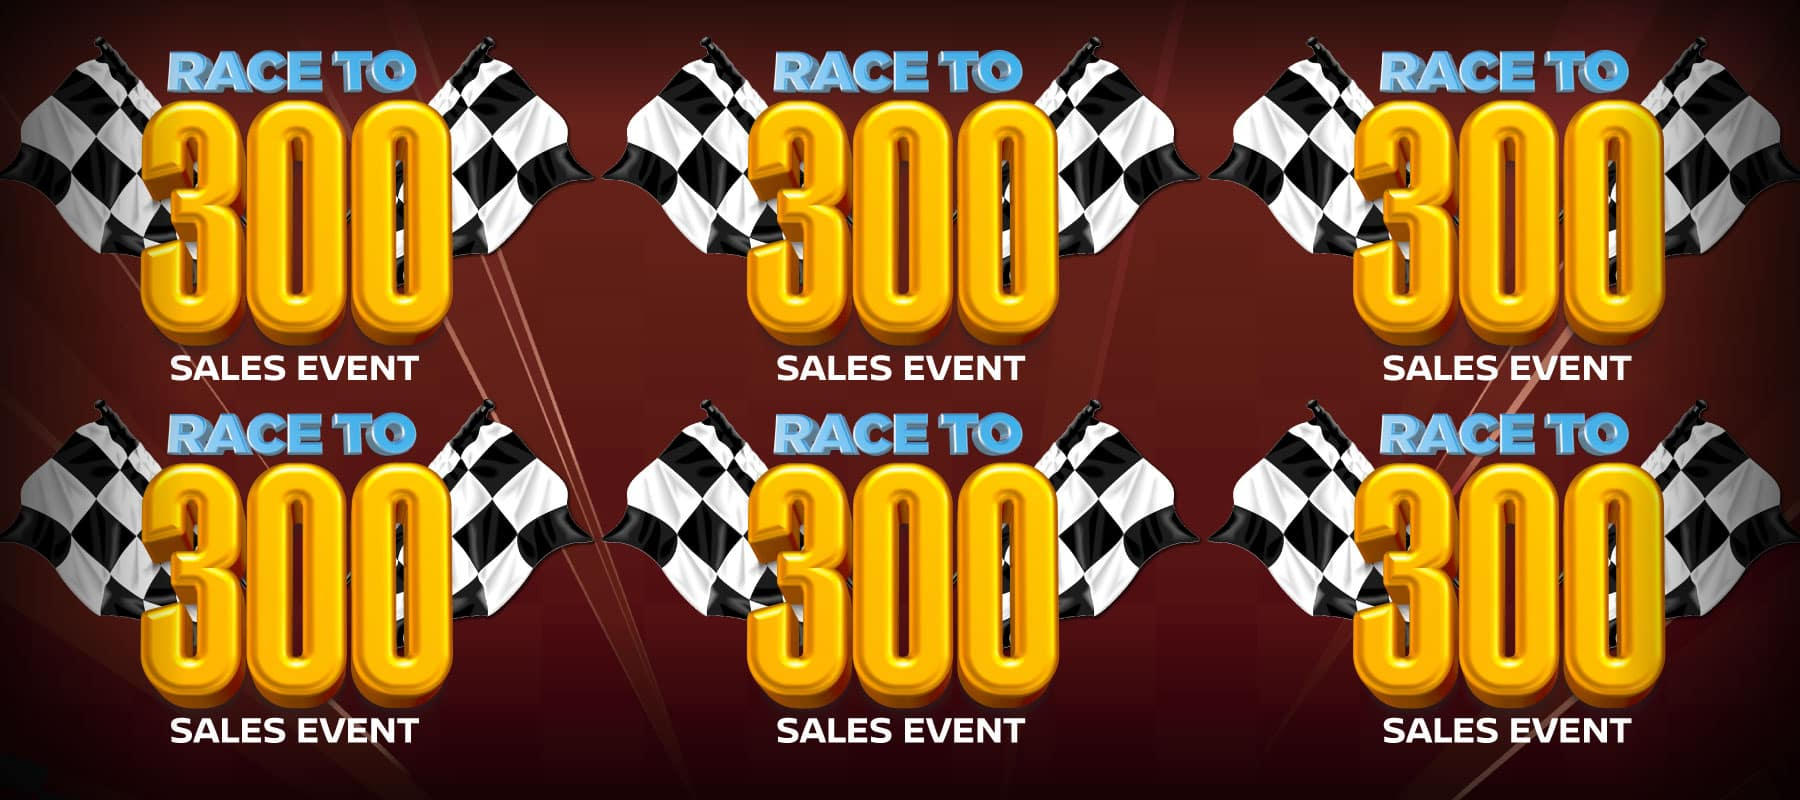 Race to 300 Sales Event